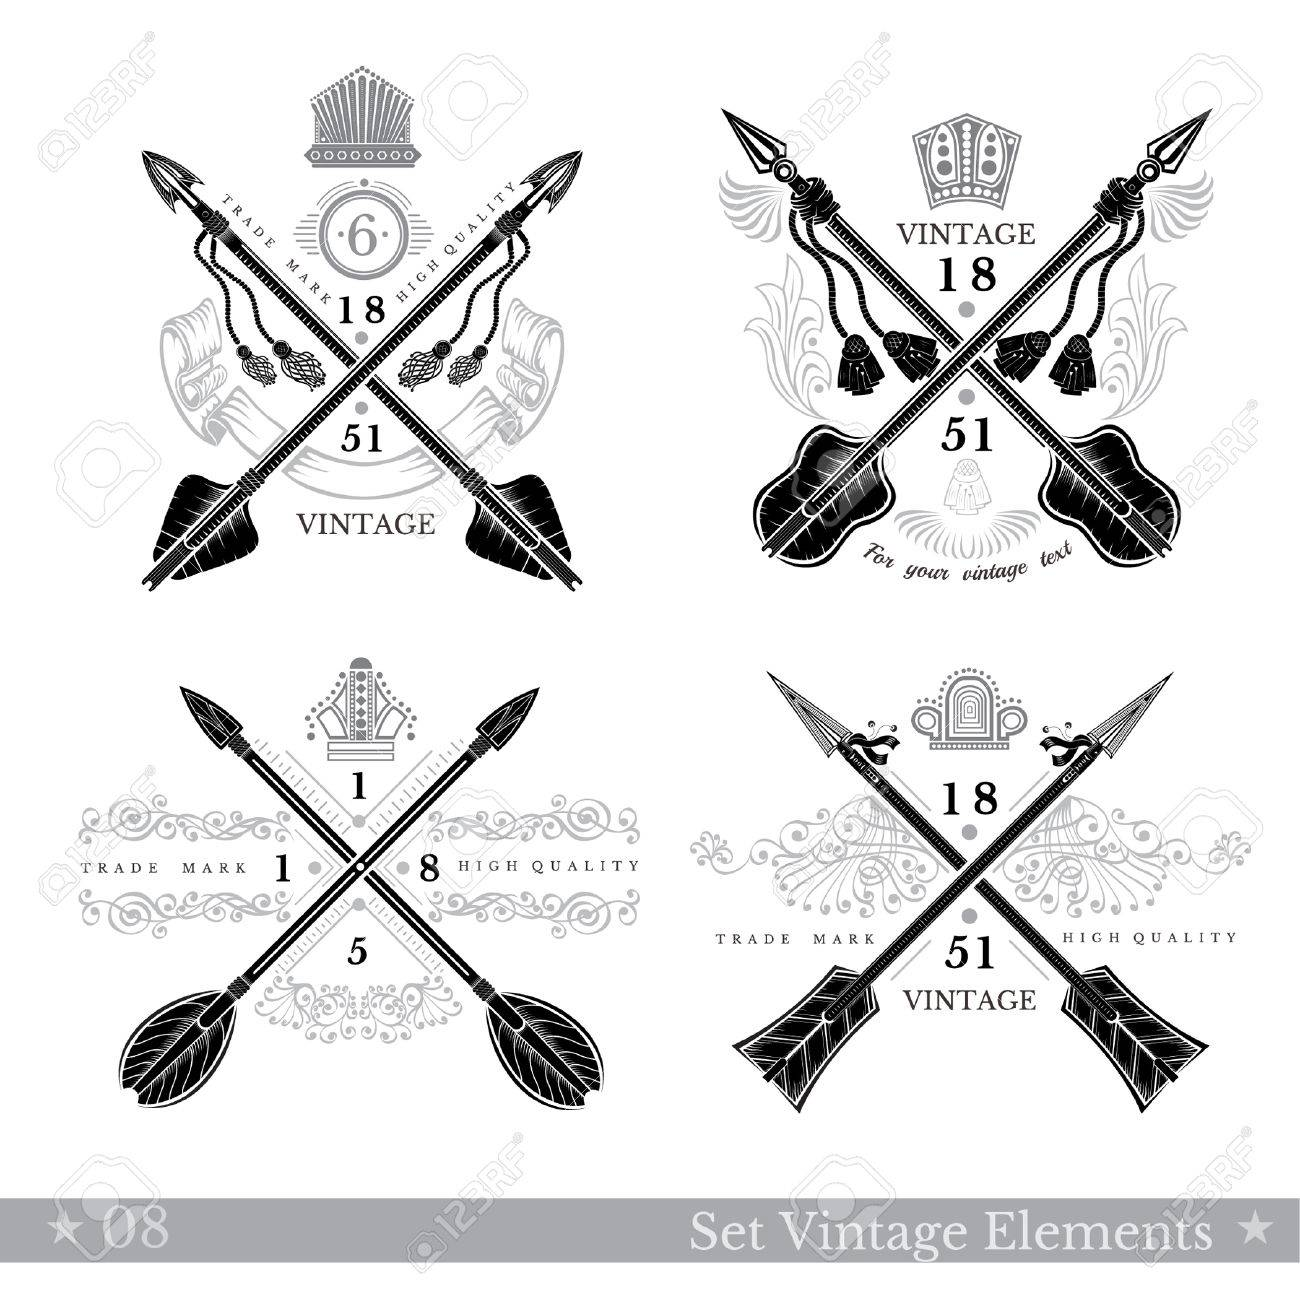 Set of cross arrows with pattern element. Hipster vintage style templates  for business, labels